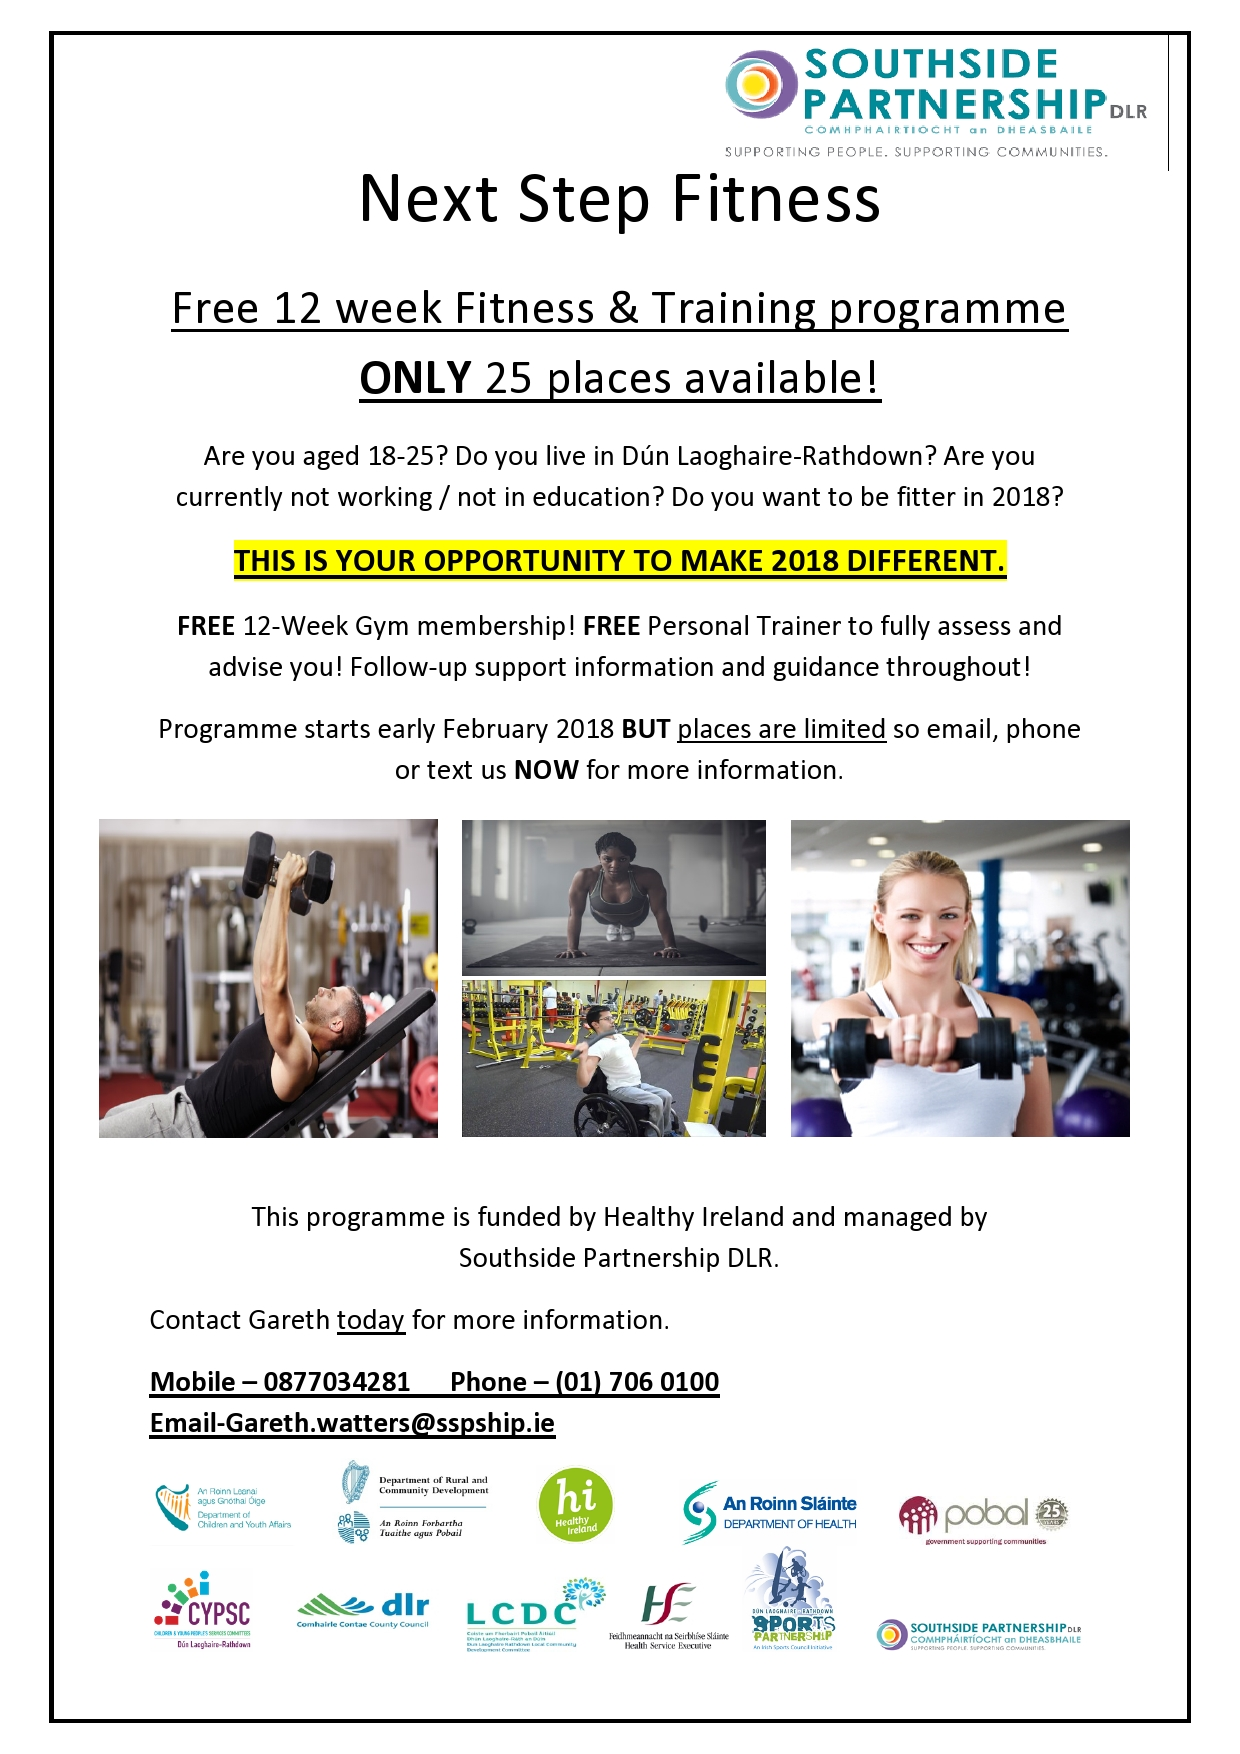 Next Step Fitness flyer jpeg